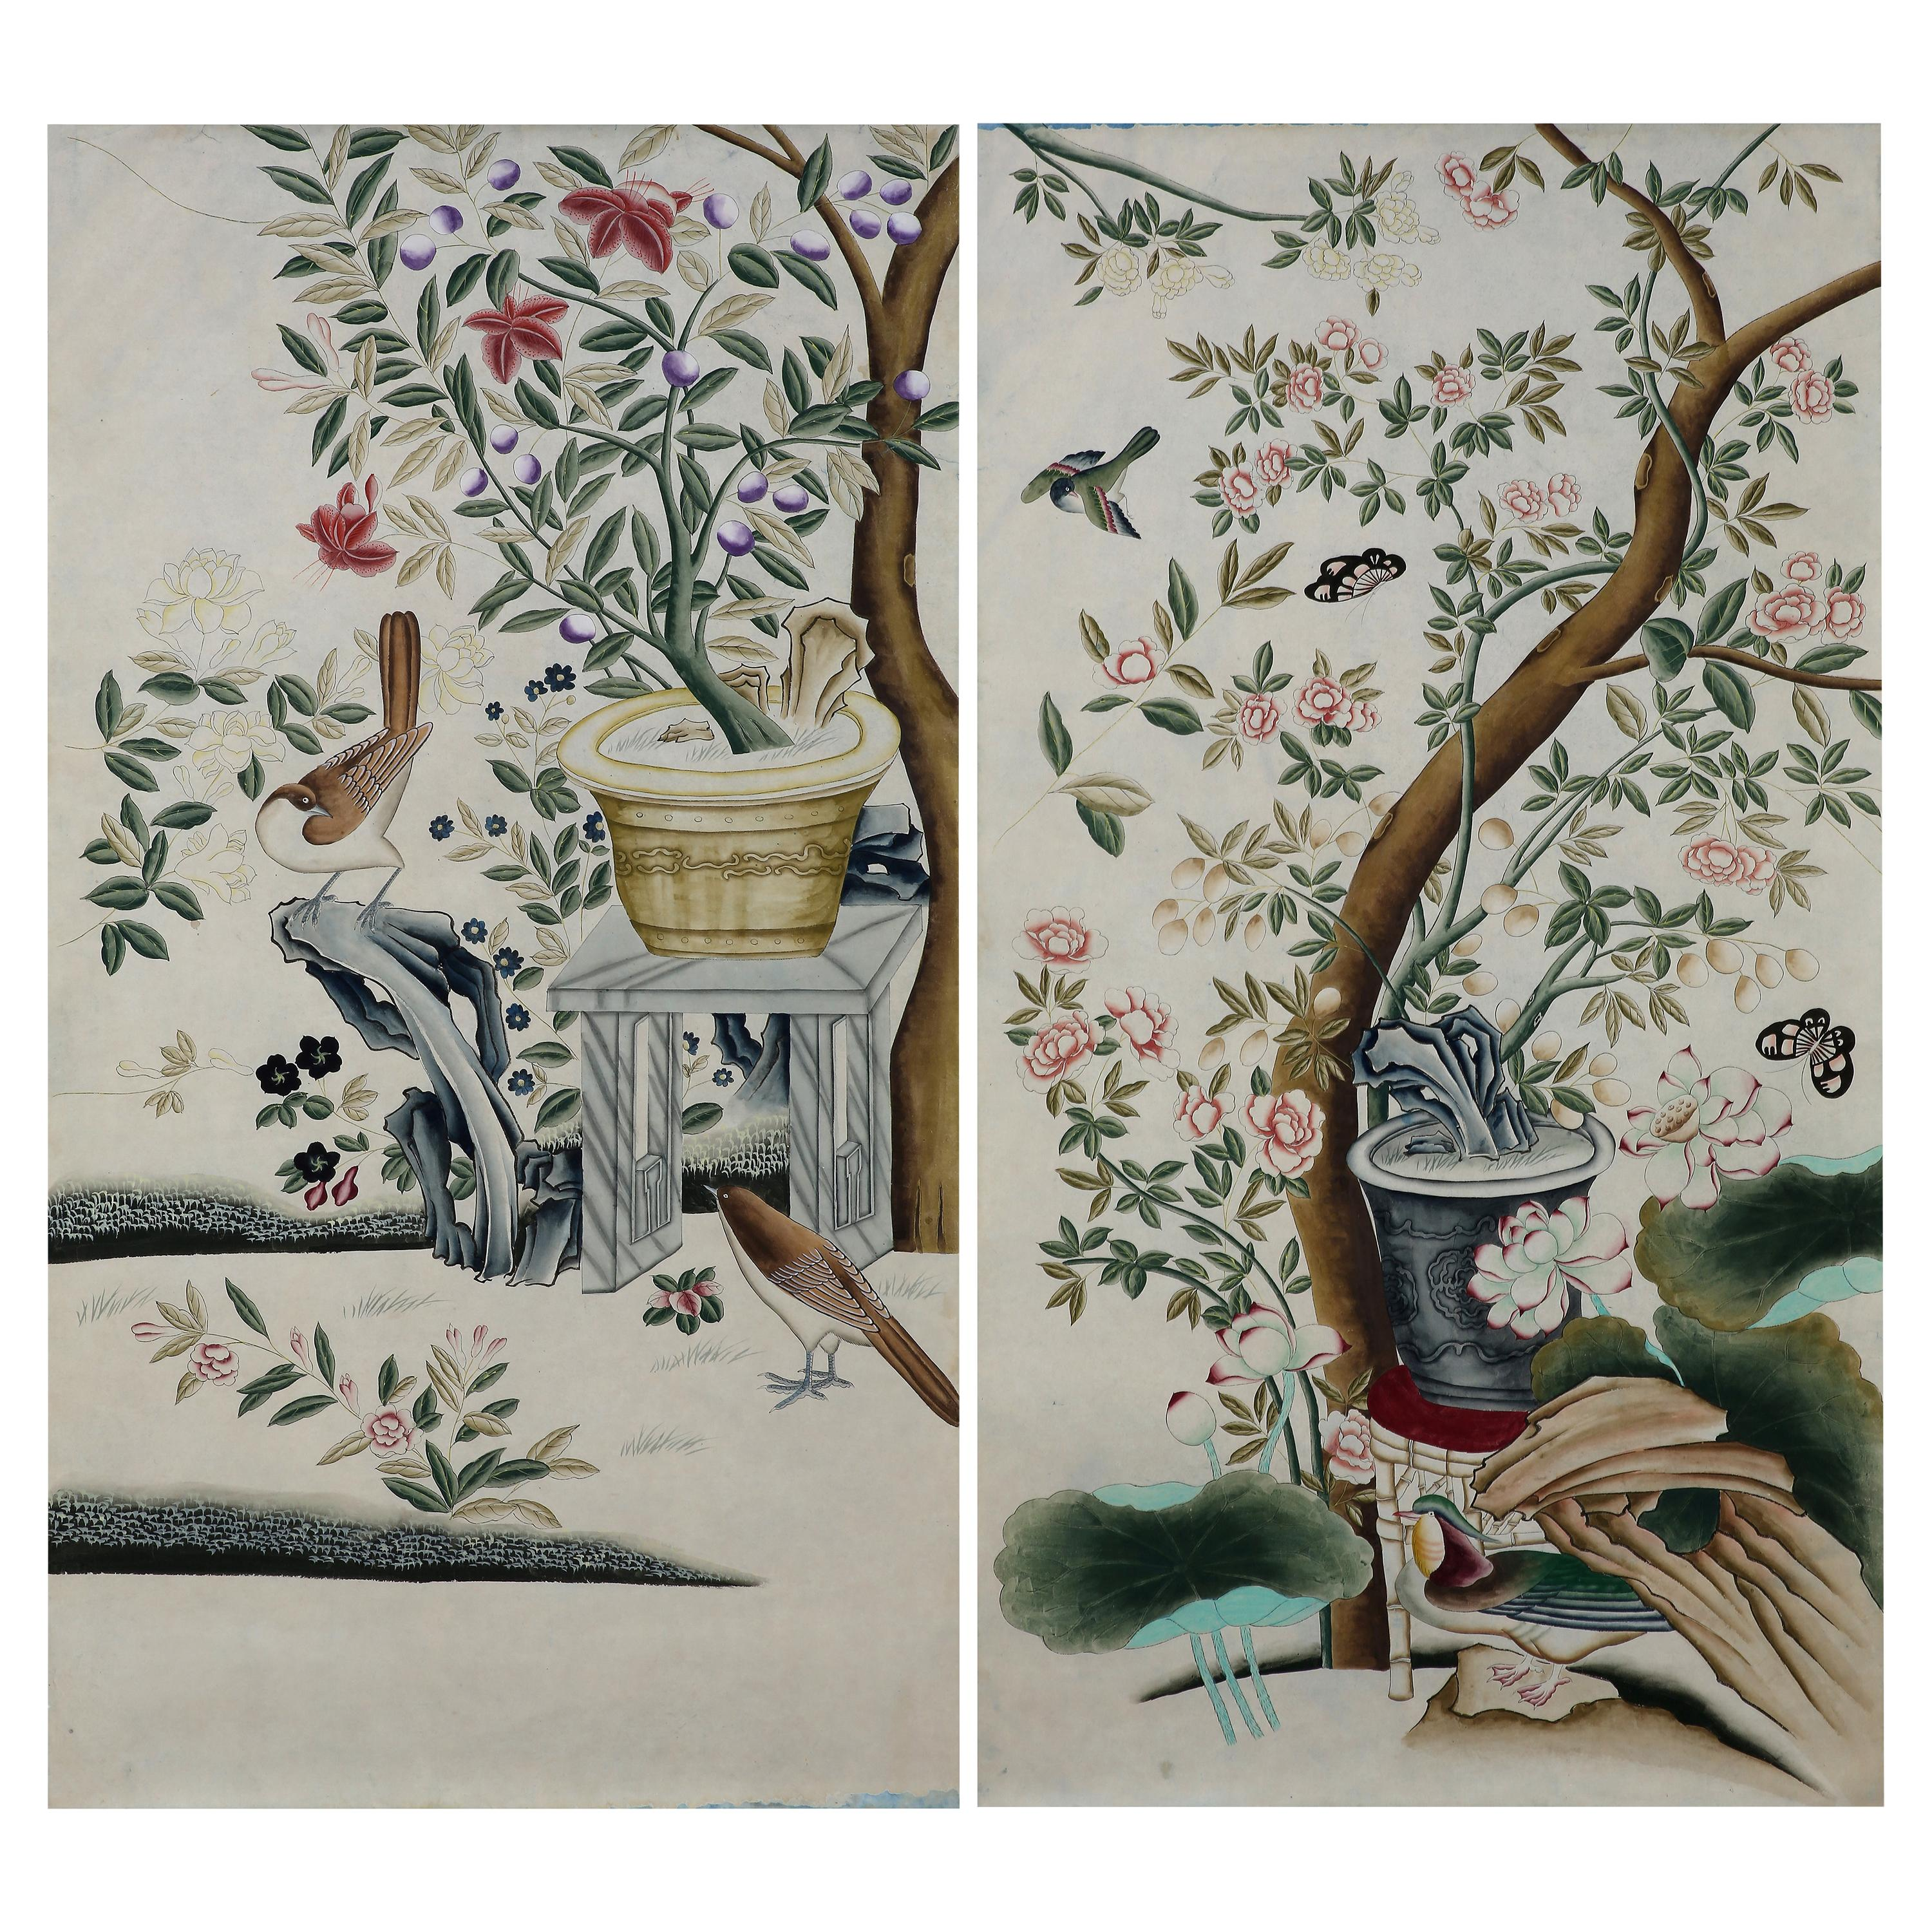 Chinoiserie Hand Painted Wallpaper Panels of Birds in a Garden Setting